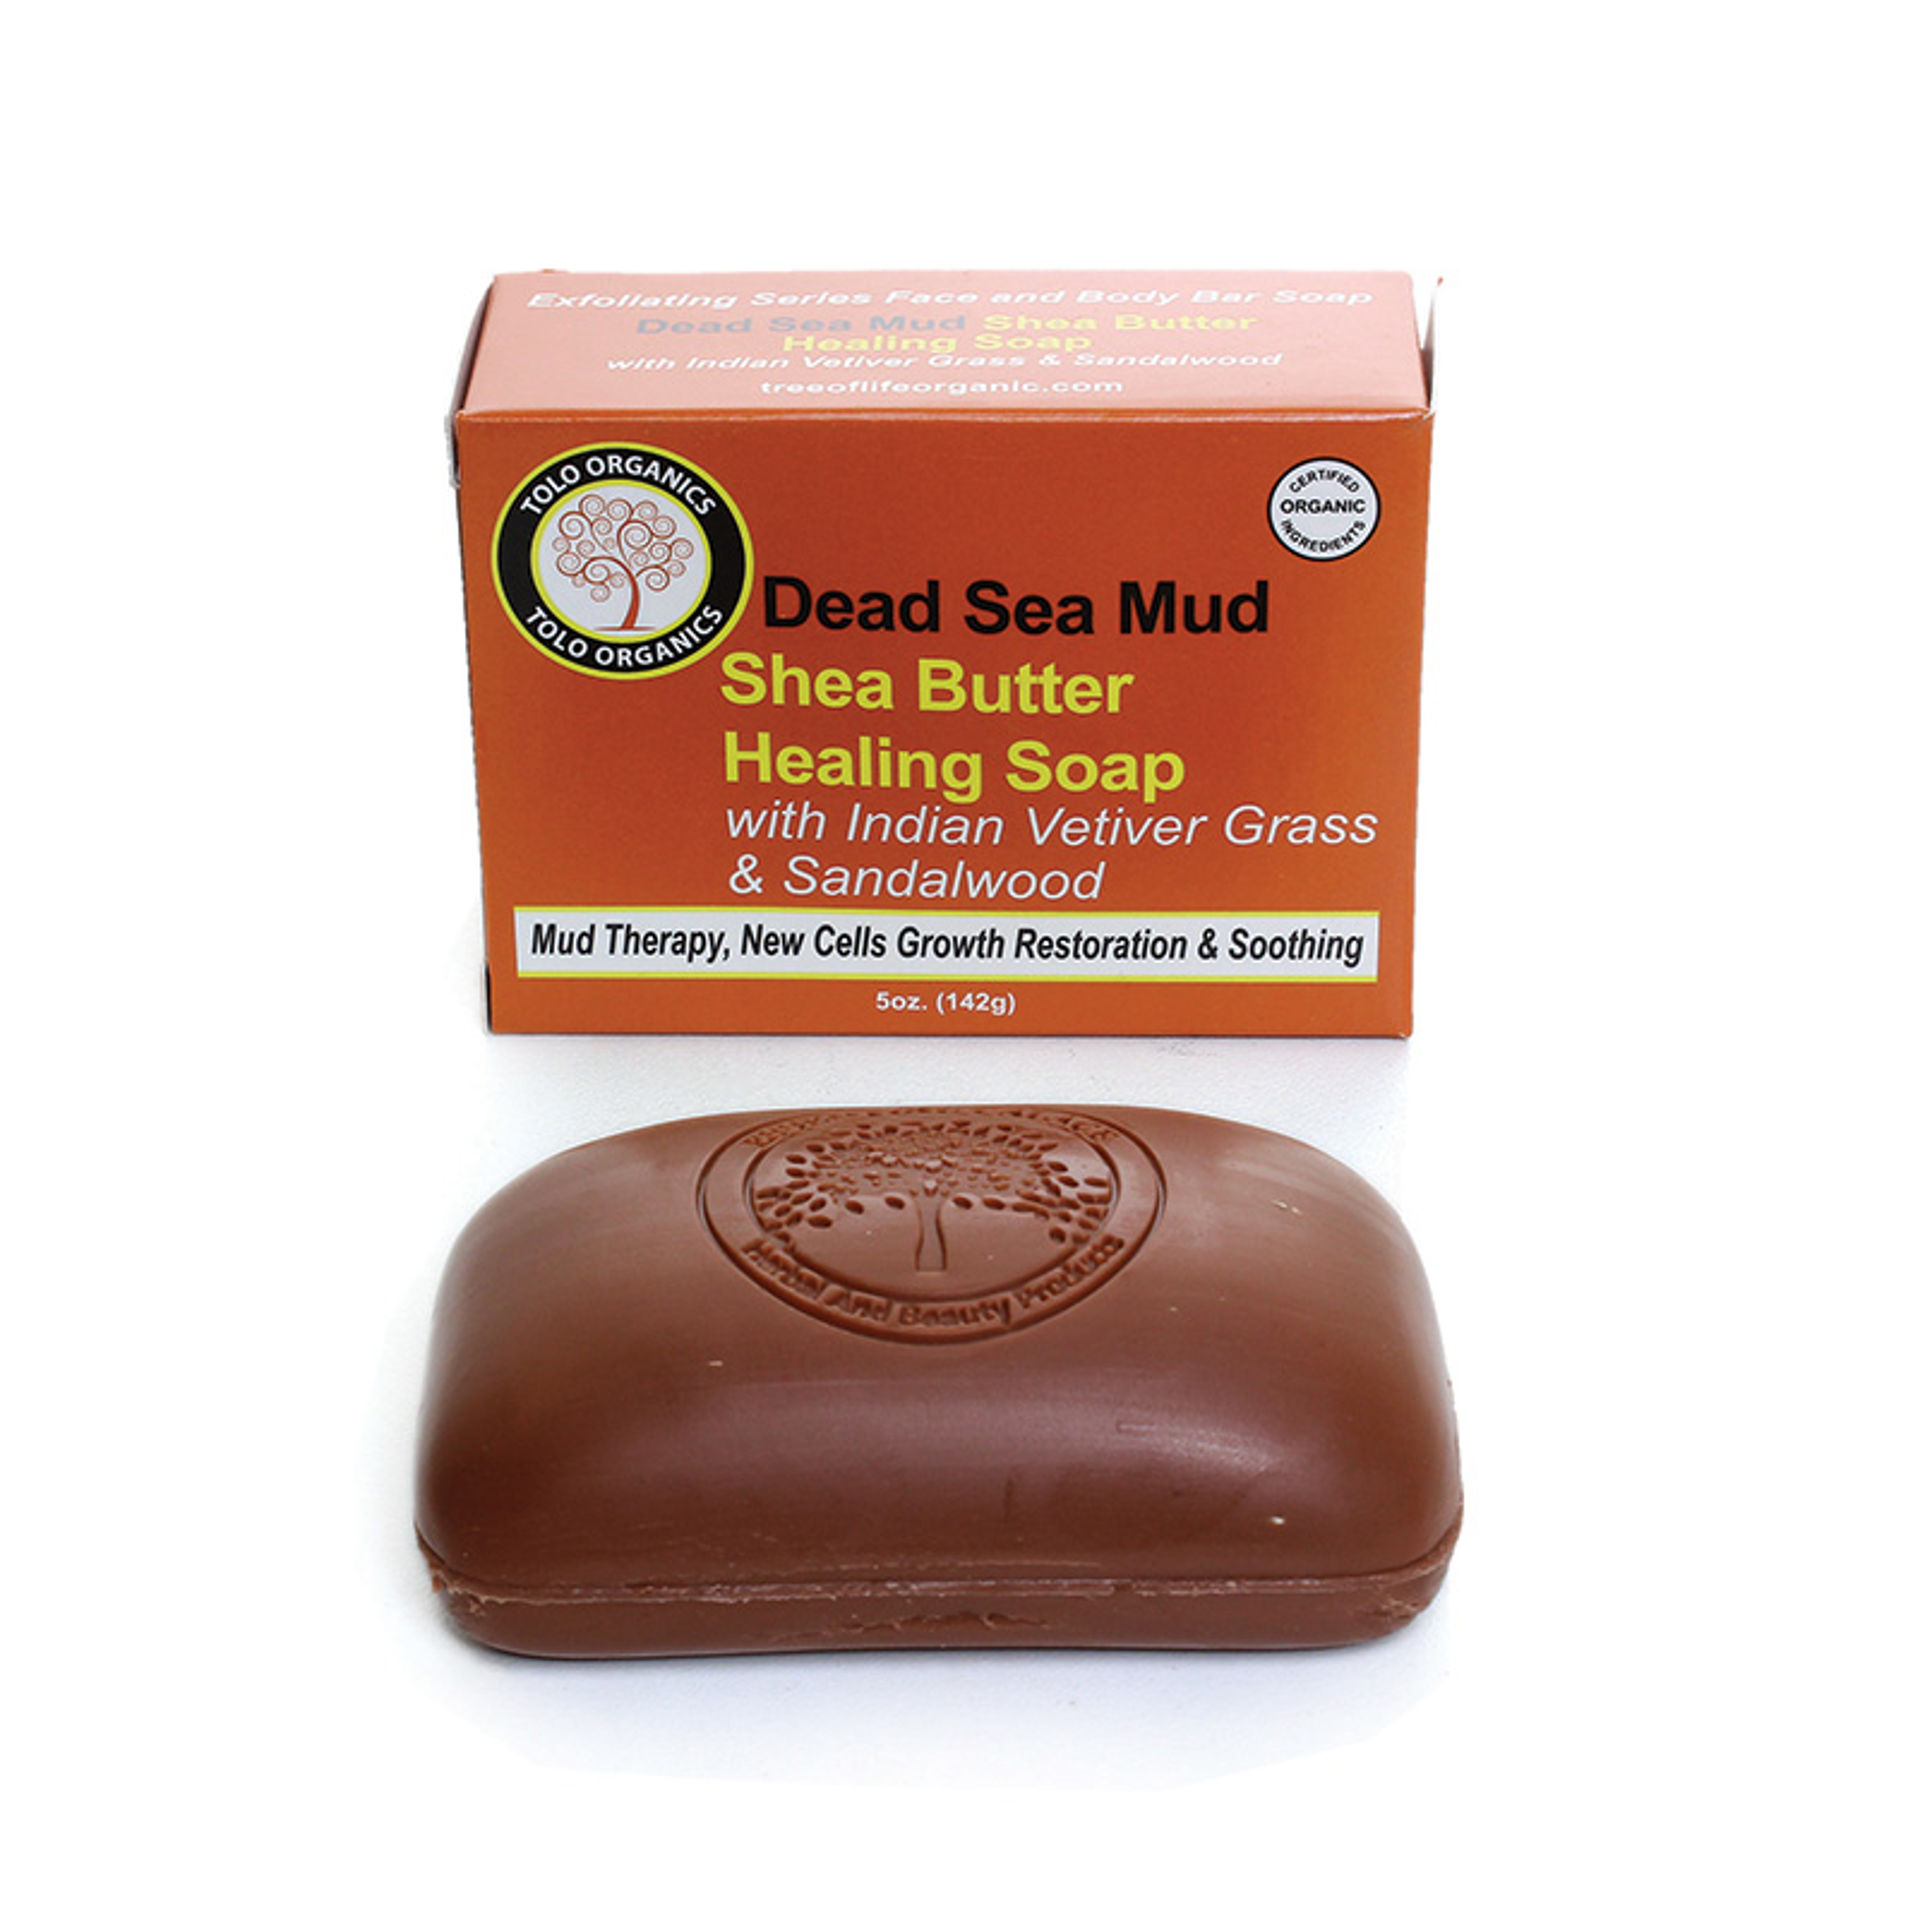 Picture of Dead Sea Mud Shea Butter Soap: 5 oz.